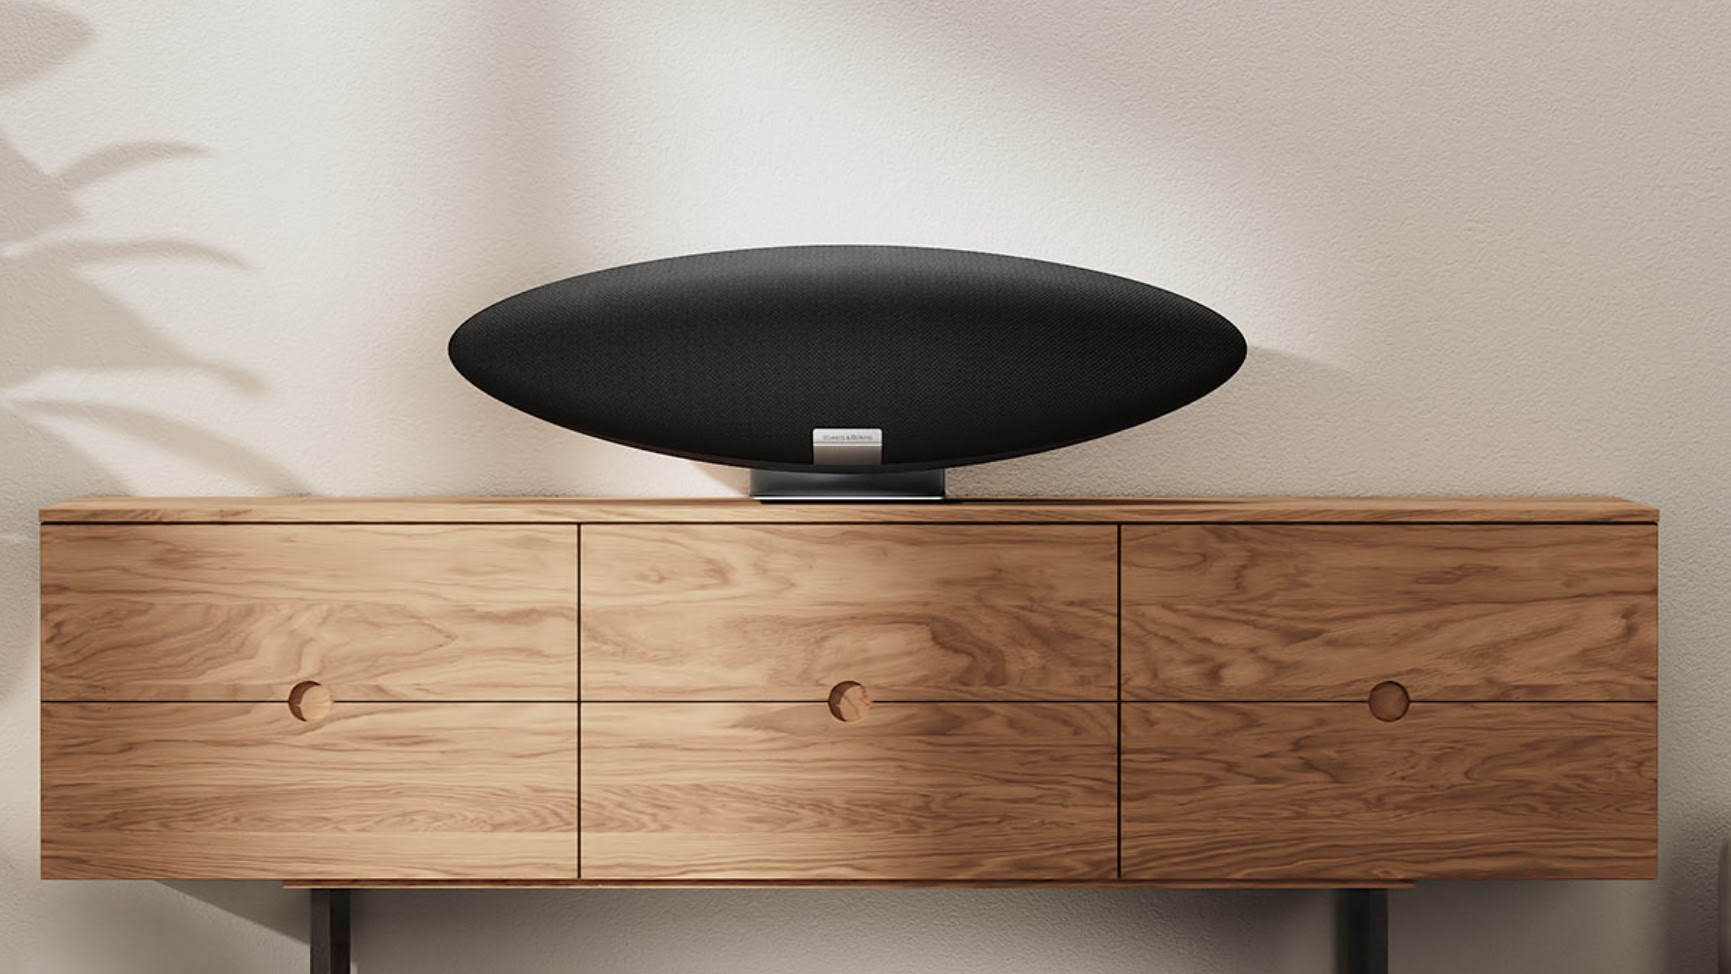 Alexa and Airplay 2 find $800, airship-shaped home in Bowers & Wilkins smart speaker